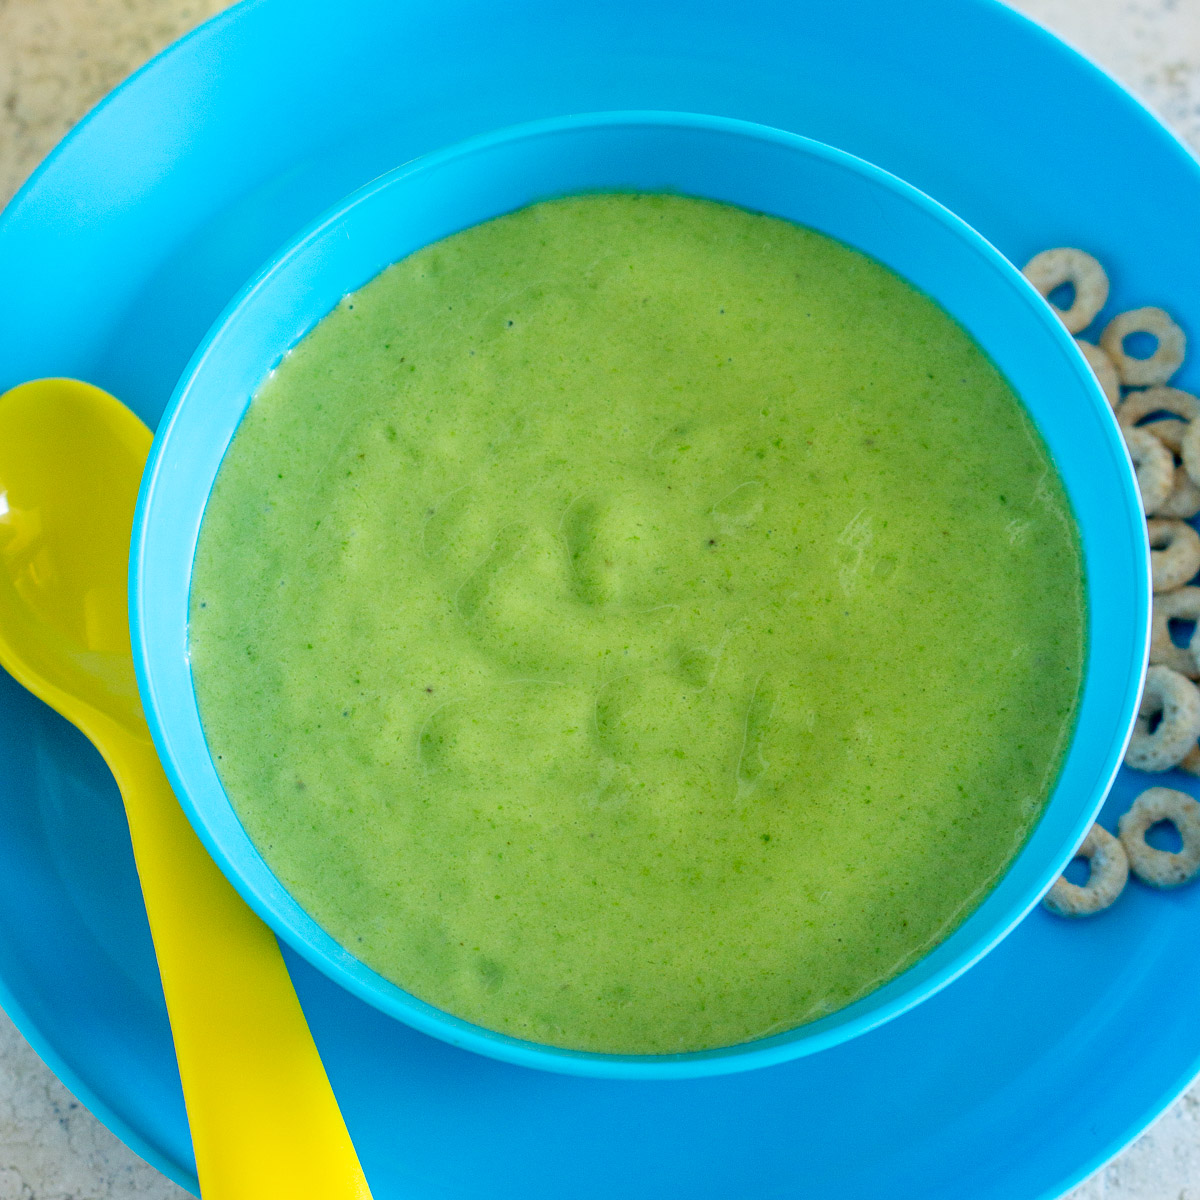 bowl of green baby food